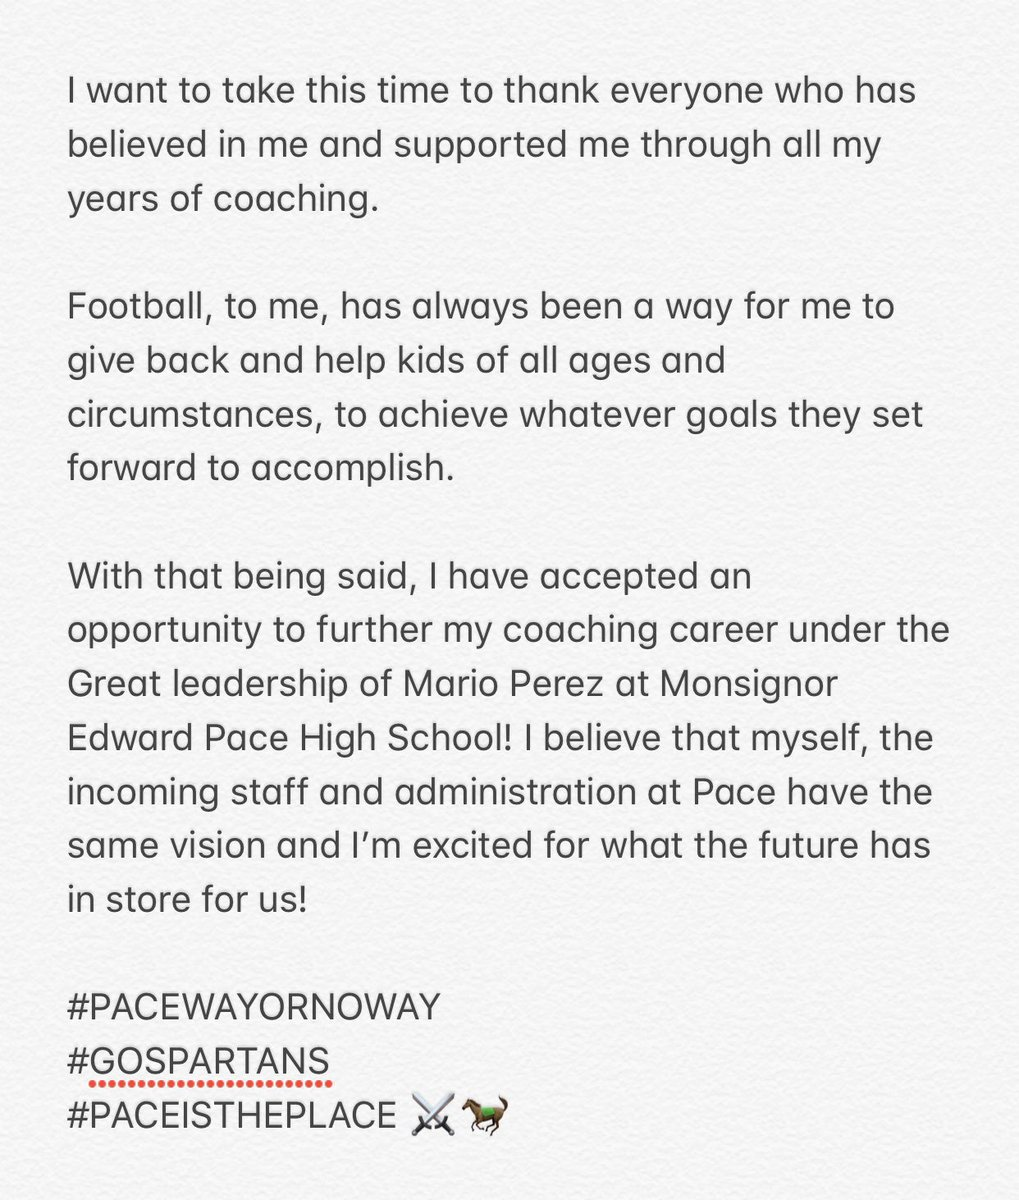 #NEWCHAPTER #PACEISTHEPLACE #PACEWAY #SPARTANBOYS #300